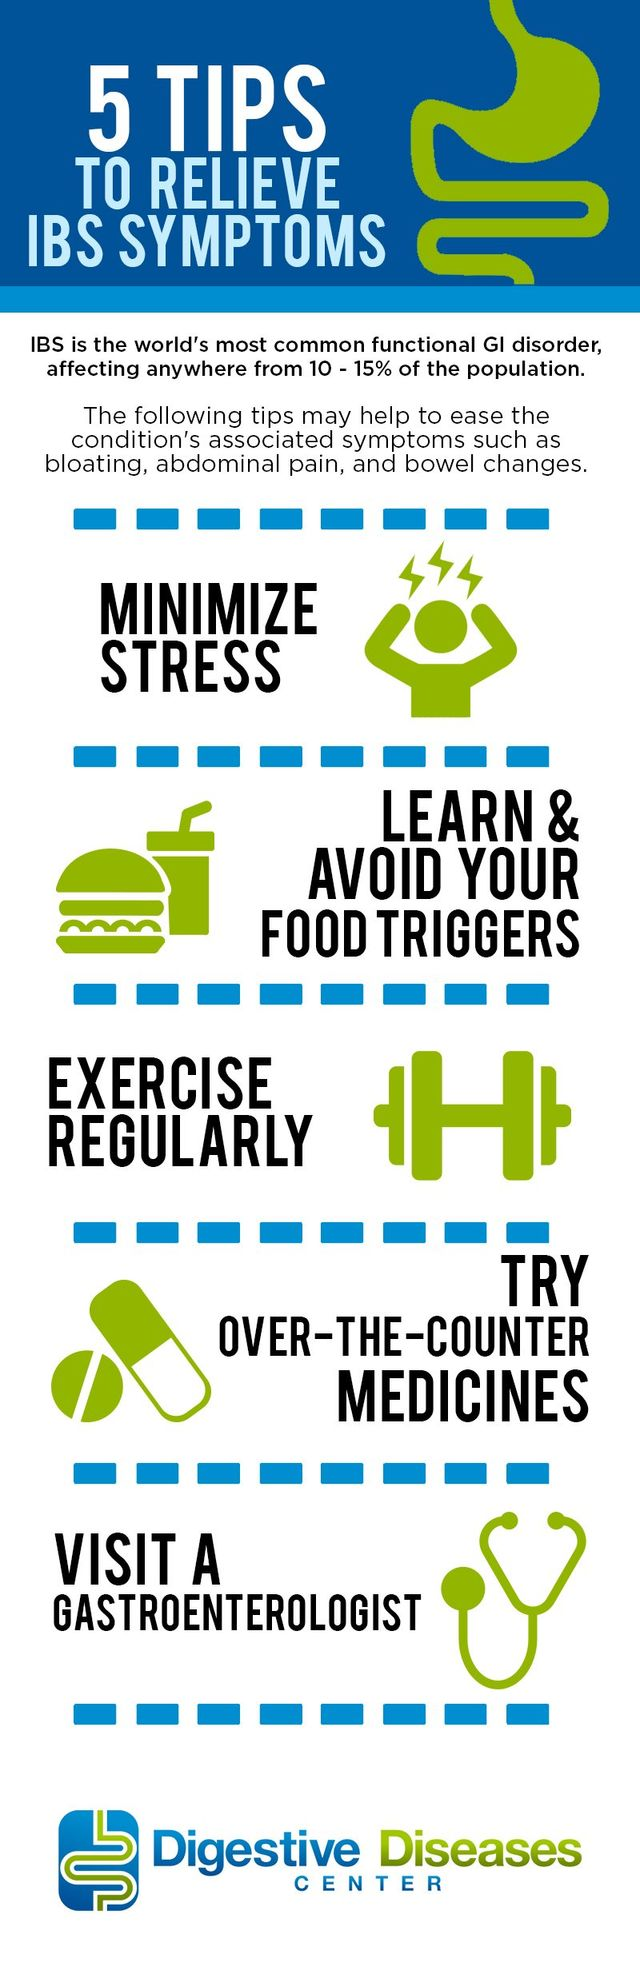 5 Tips To Relieve Ibs Symptoms Infographic